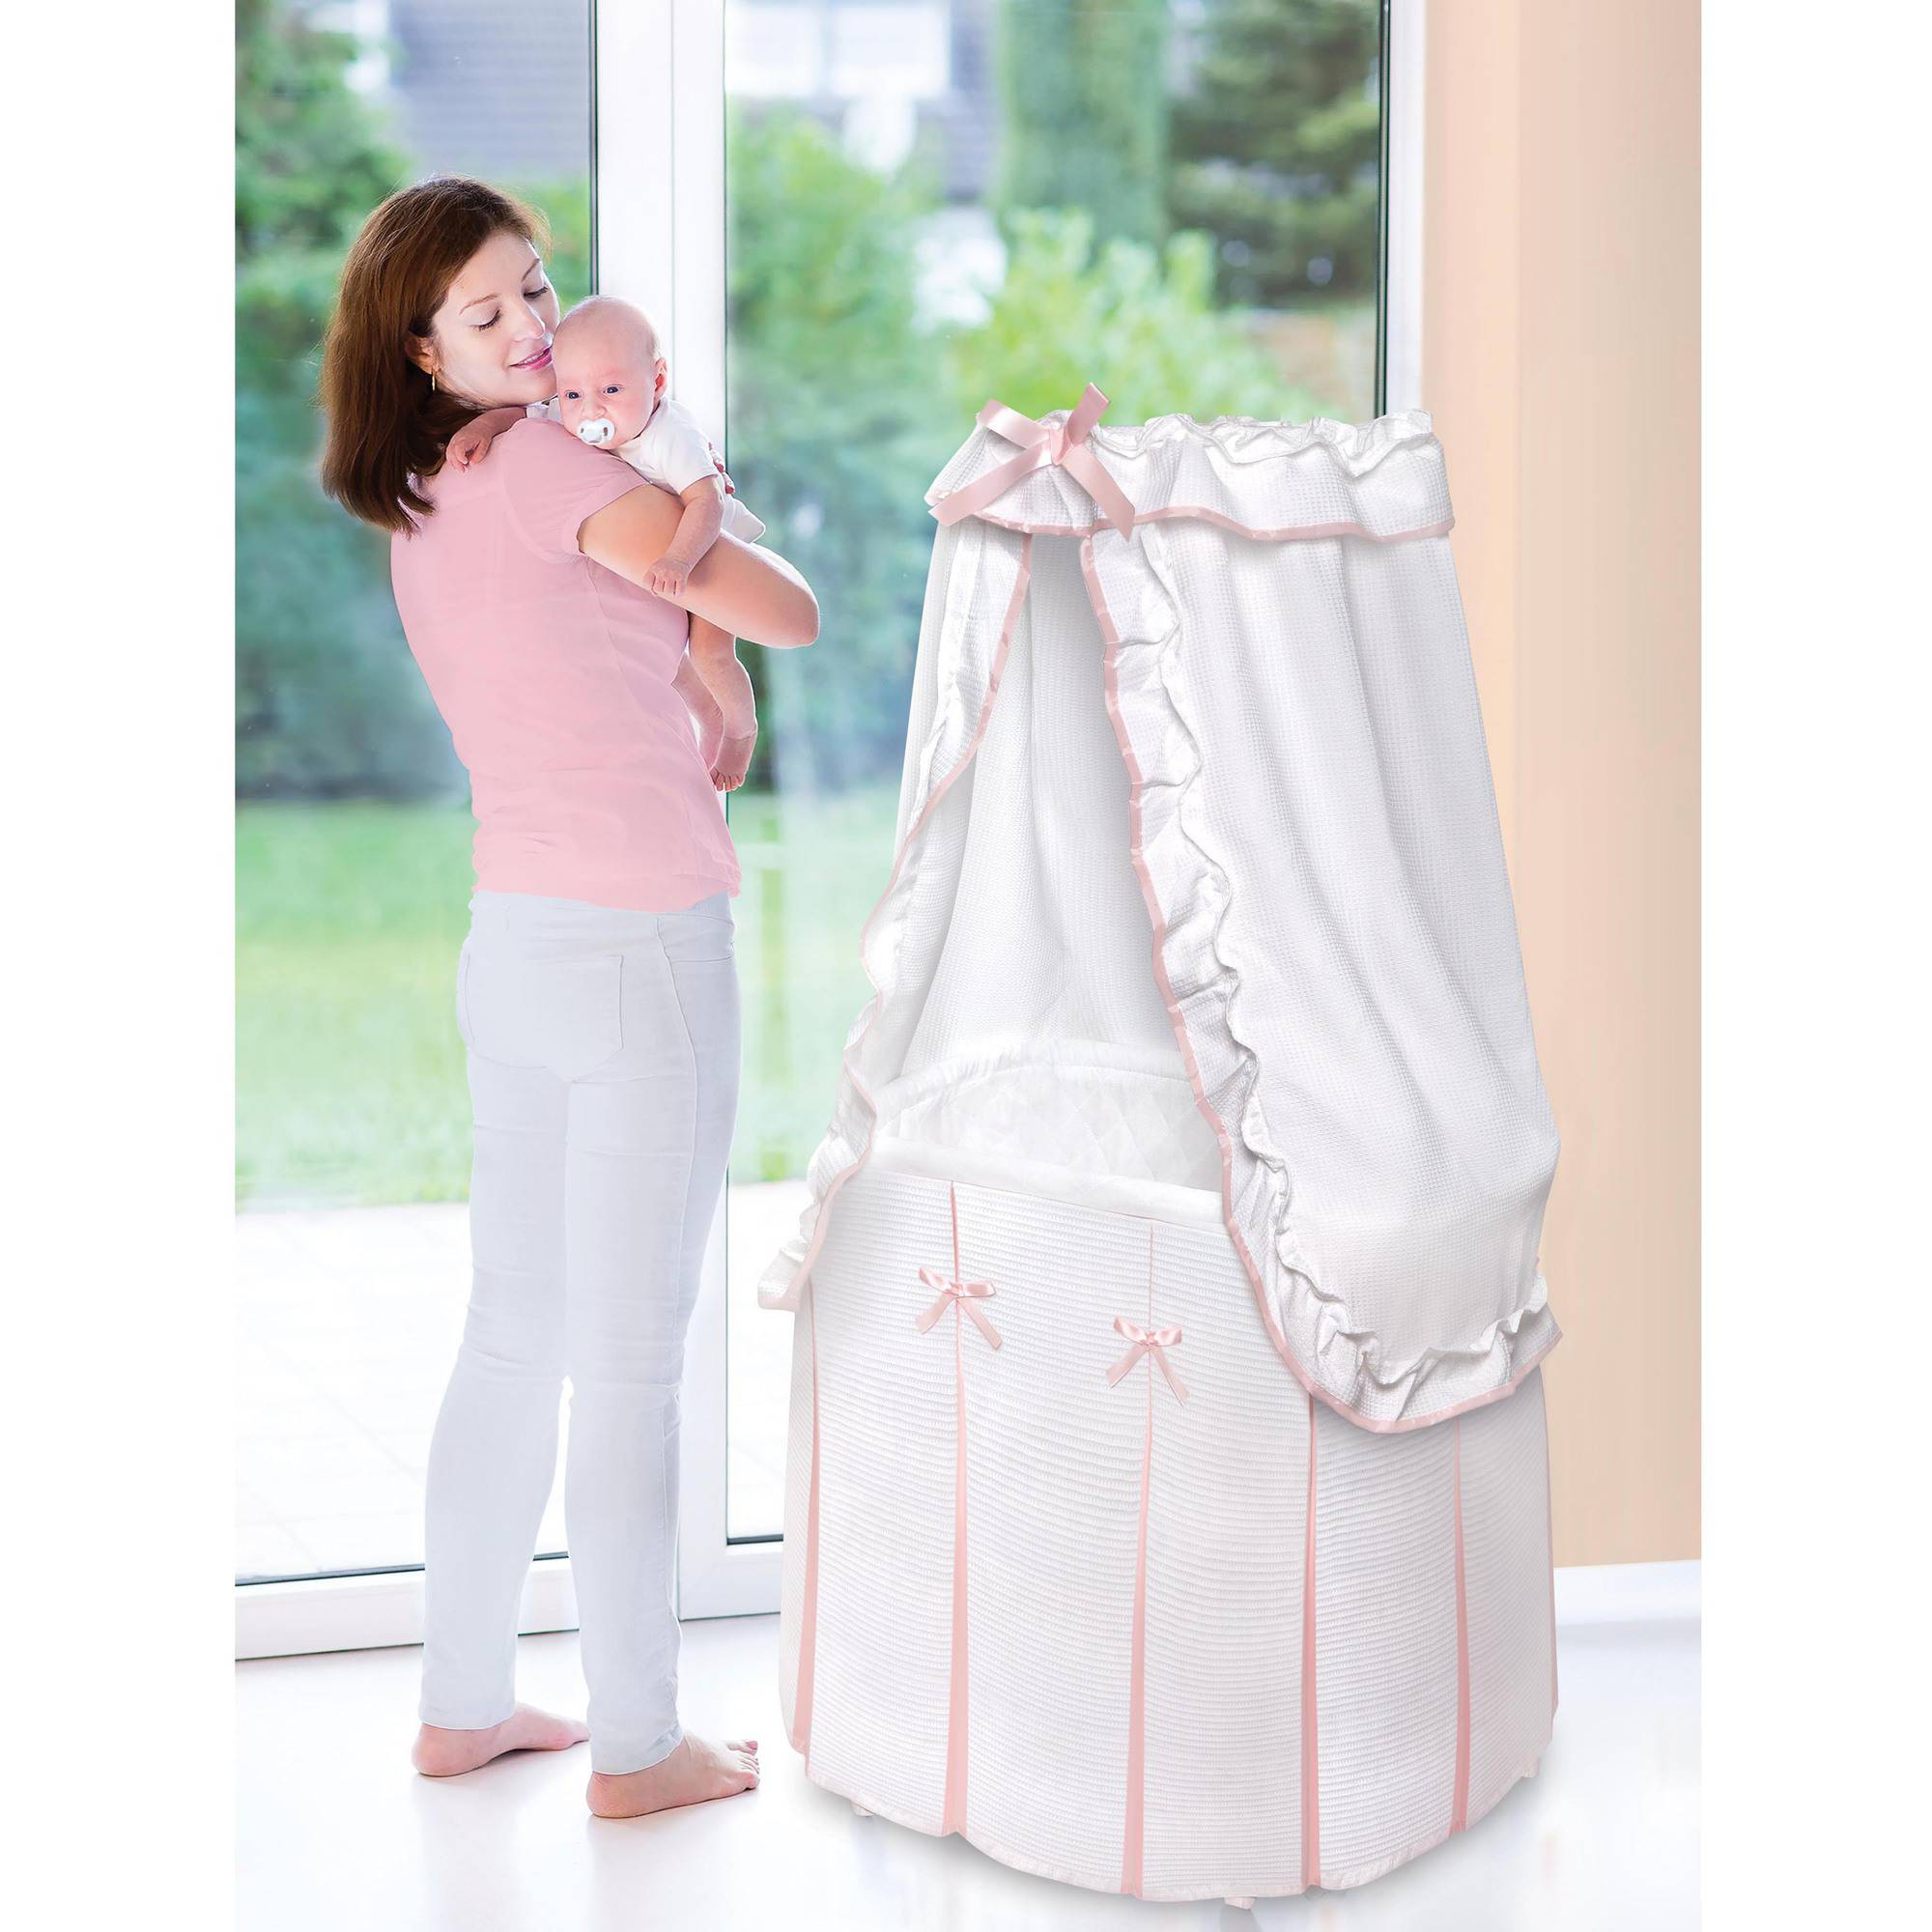 Baby Basket Bassinet Badger Basket Majesty Baby Bassinet With Canopy White